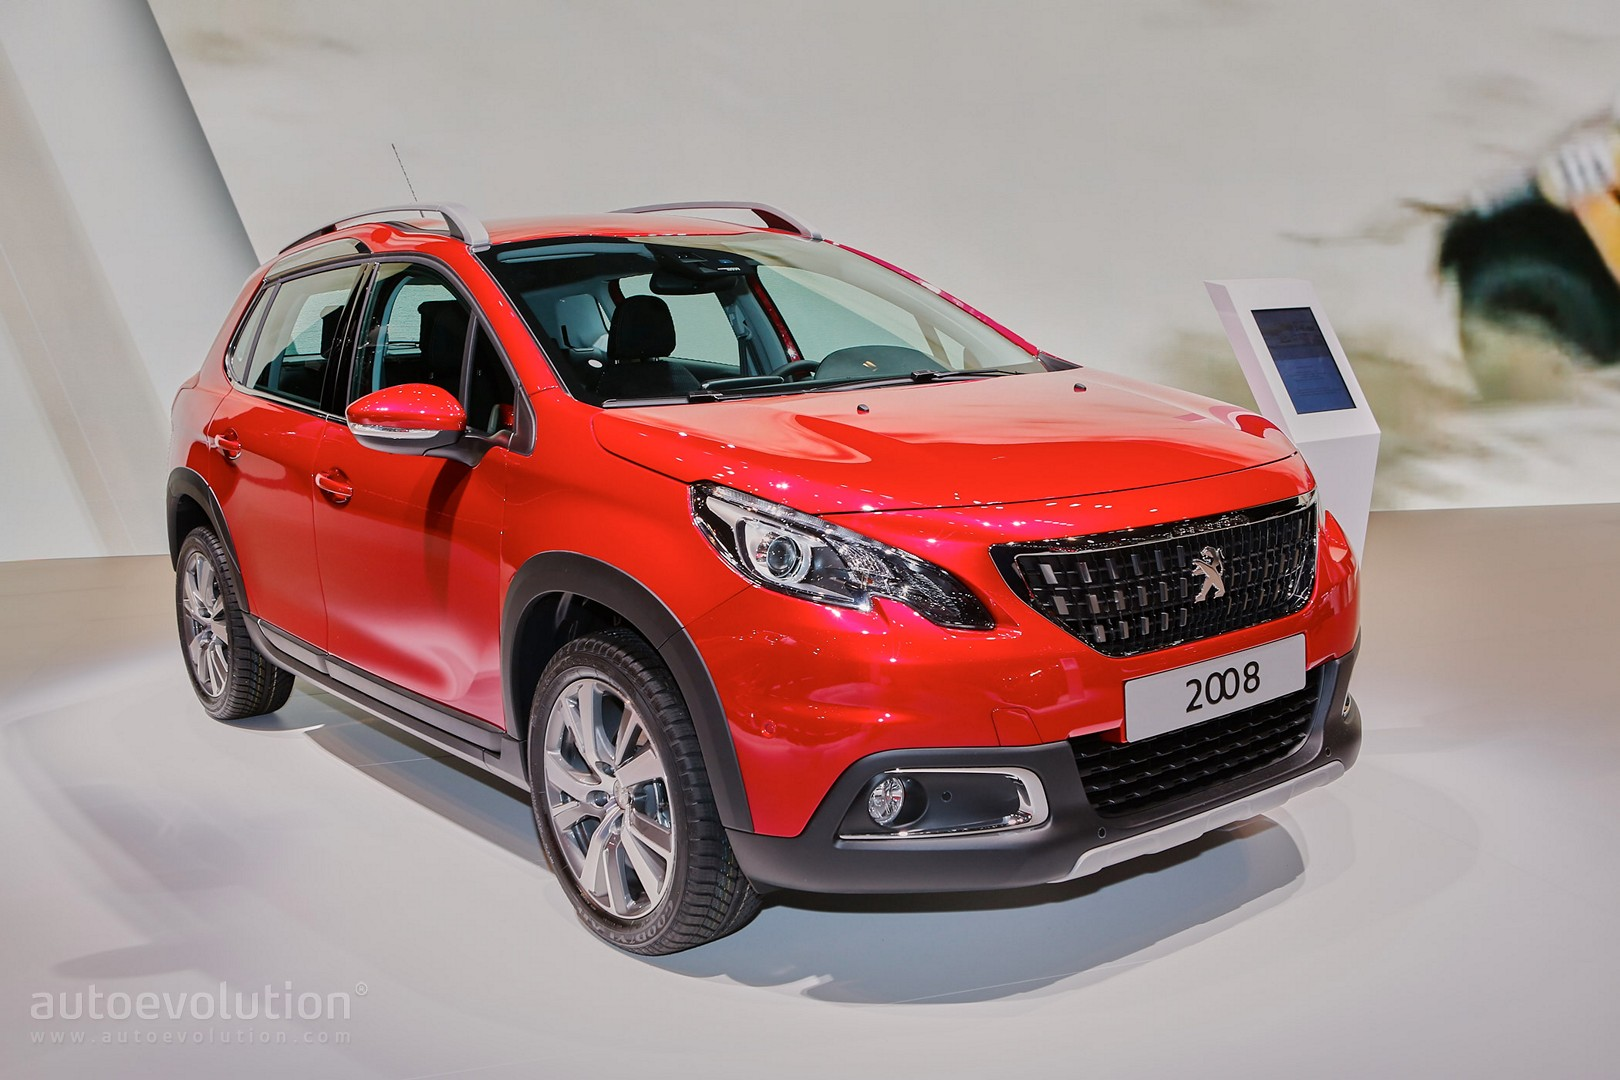 2016 peugeot 2008 facelift joins opel mokka x for geneva crossover shootout autoevolution. Black Bedroom Furniture Sets. Home Design Ideas